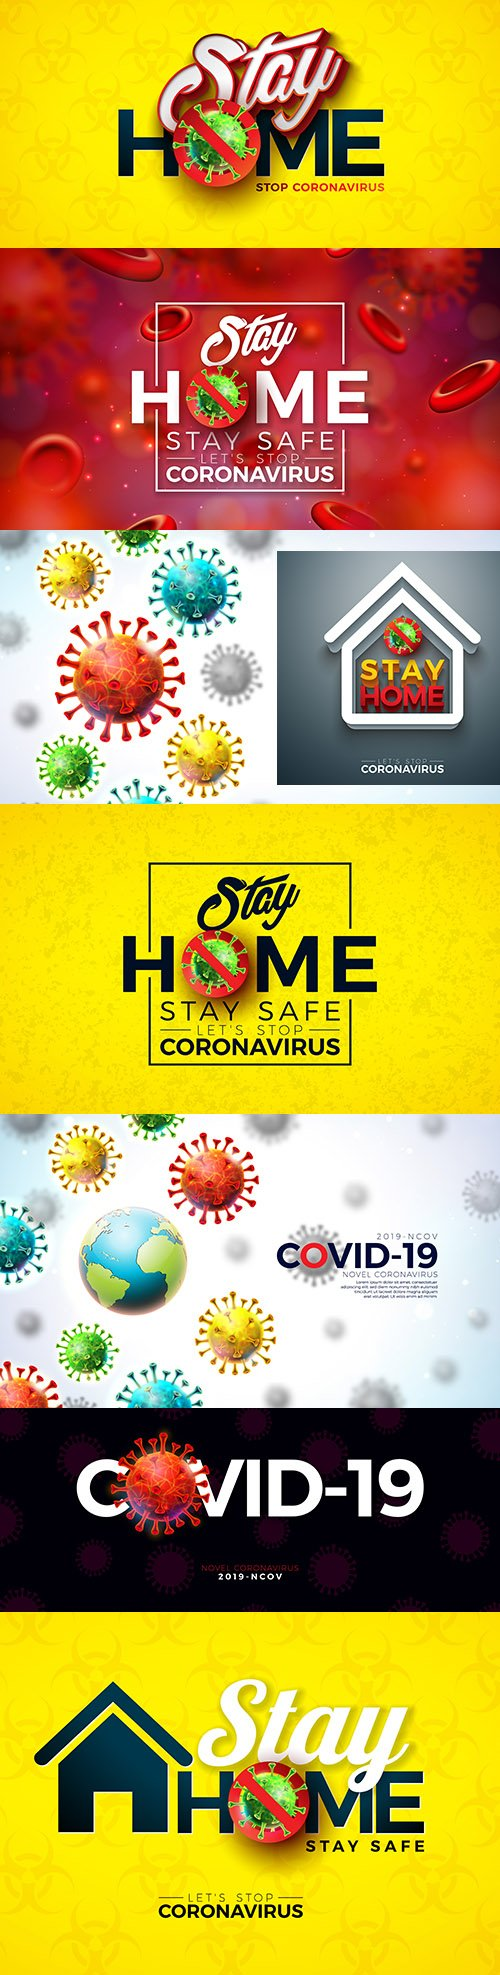 Stay home Covid-19 coronavirus and viral cell outbreak design